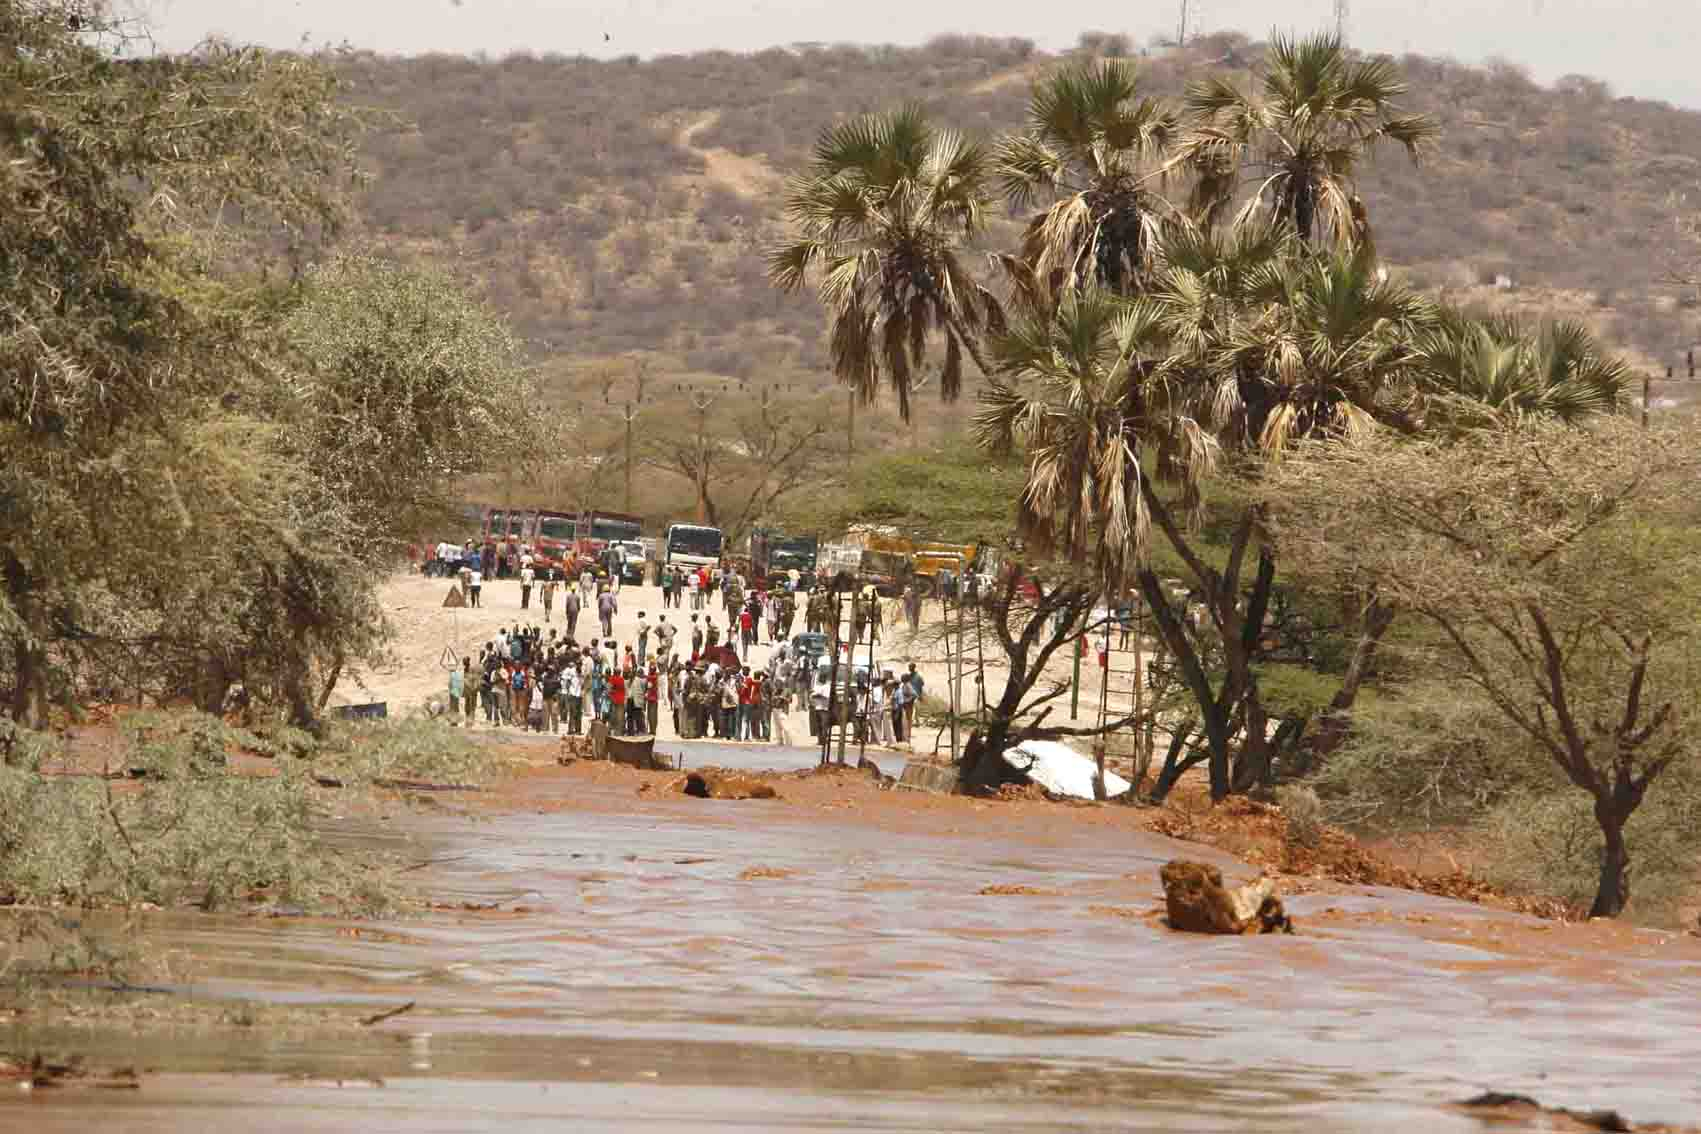 Flooded Ewaso Nyiro river along Isiolo/Samburu districts following heavy rains which caused destruction of five tourists lodges and forced an evacuation of more than 200 tourists